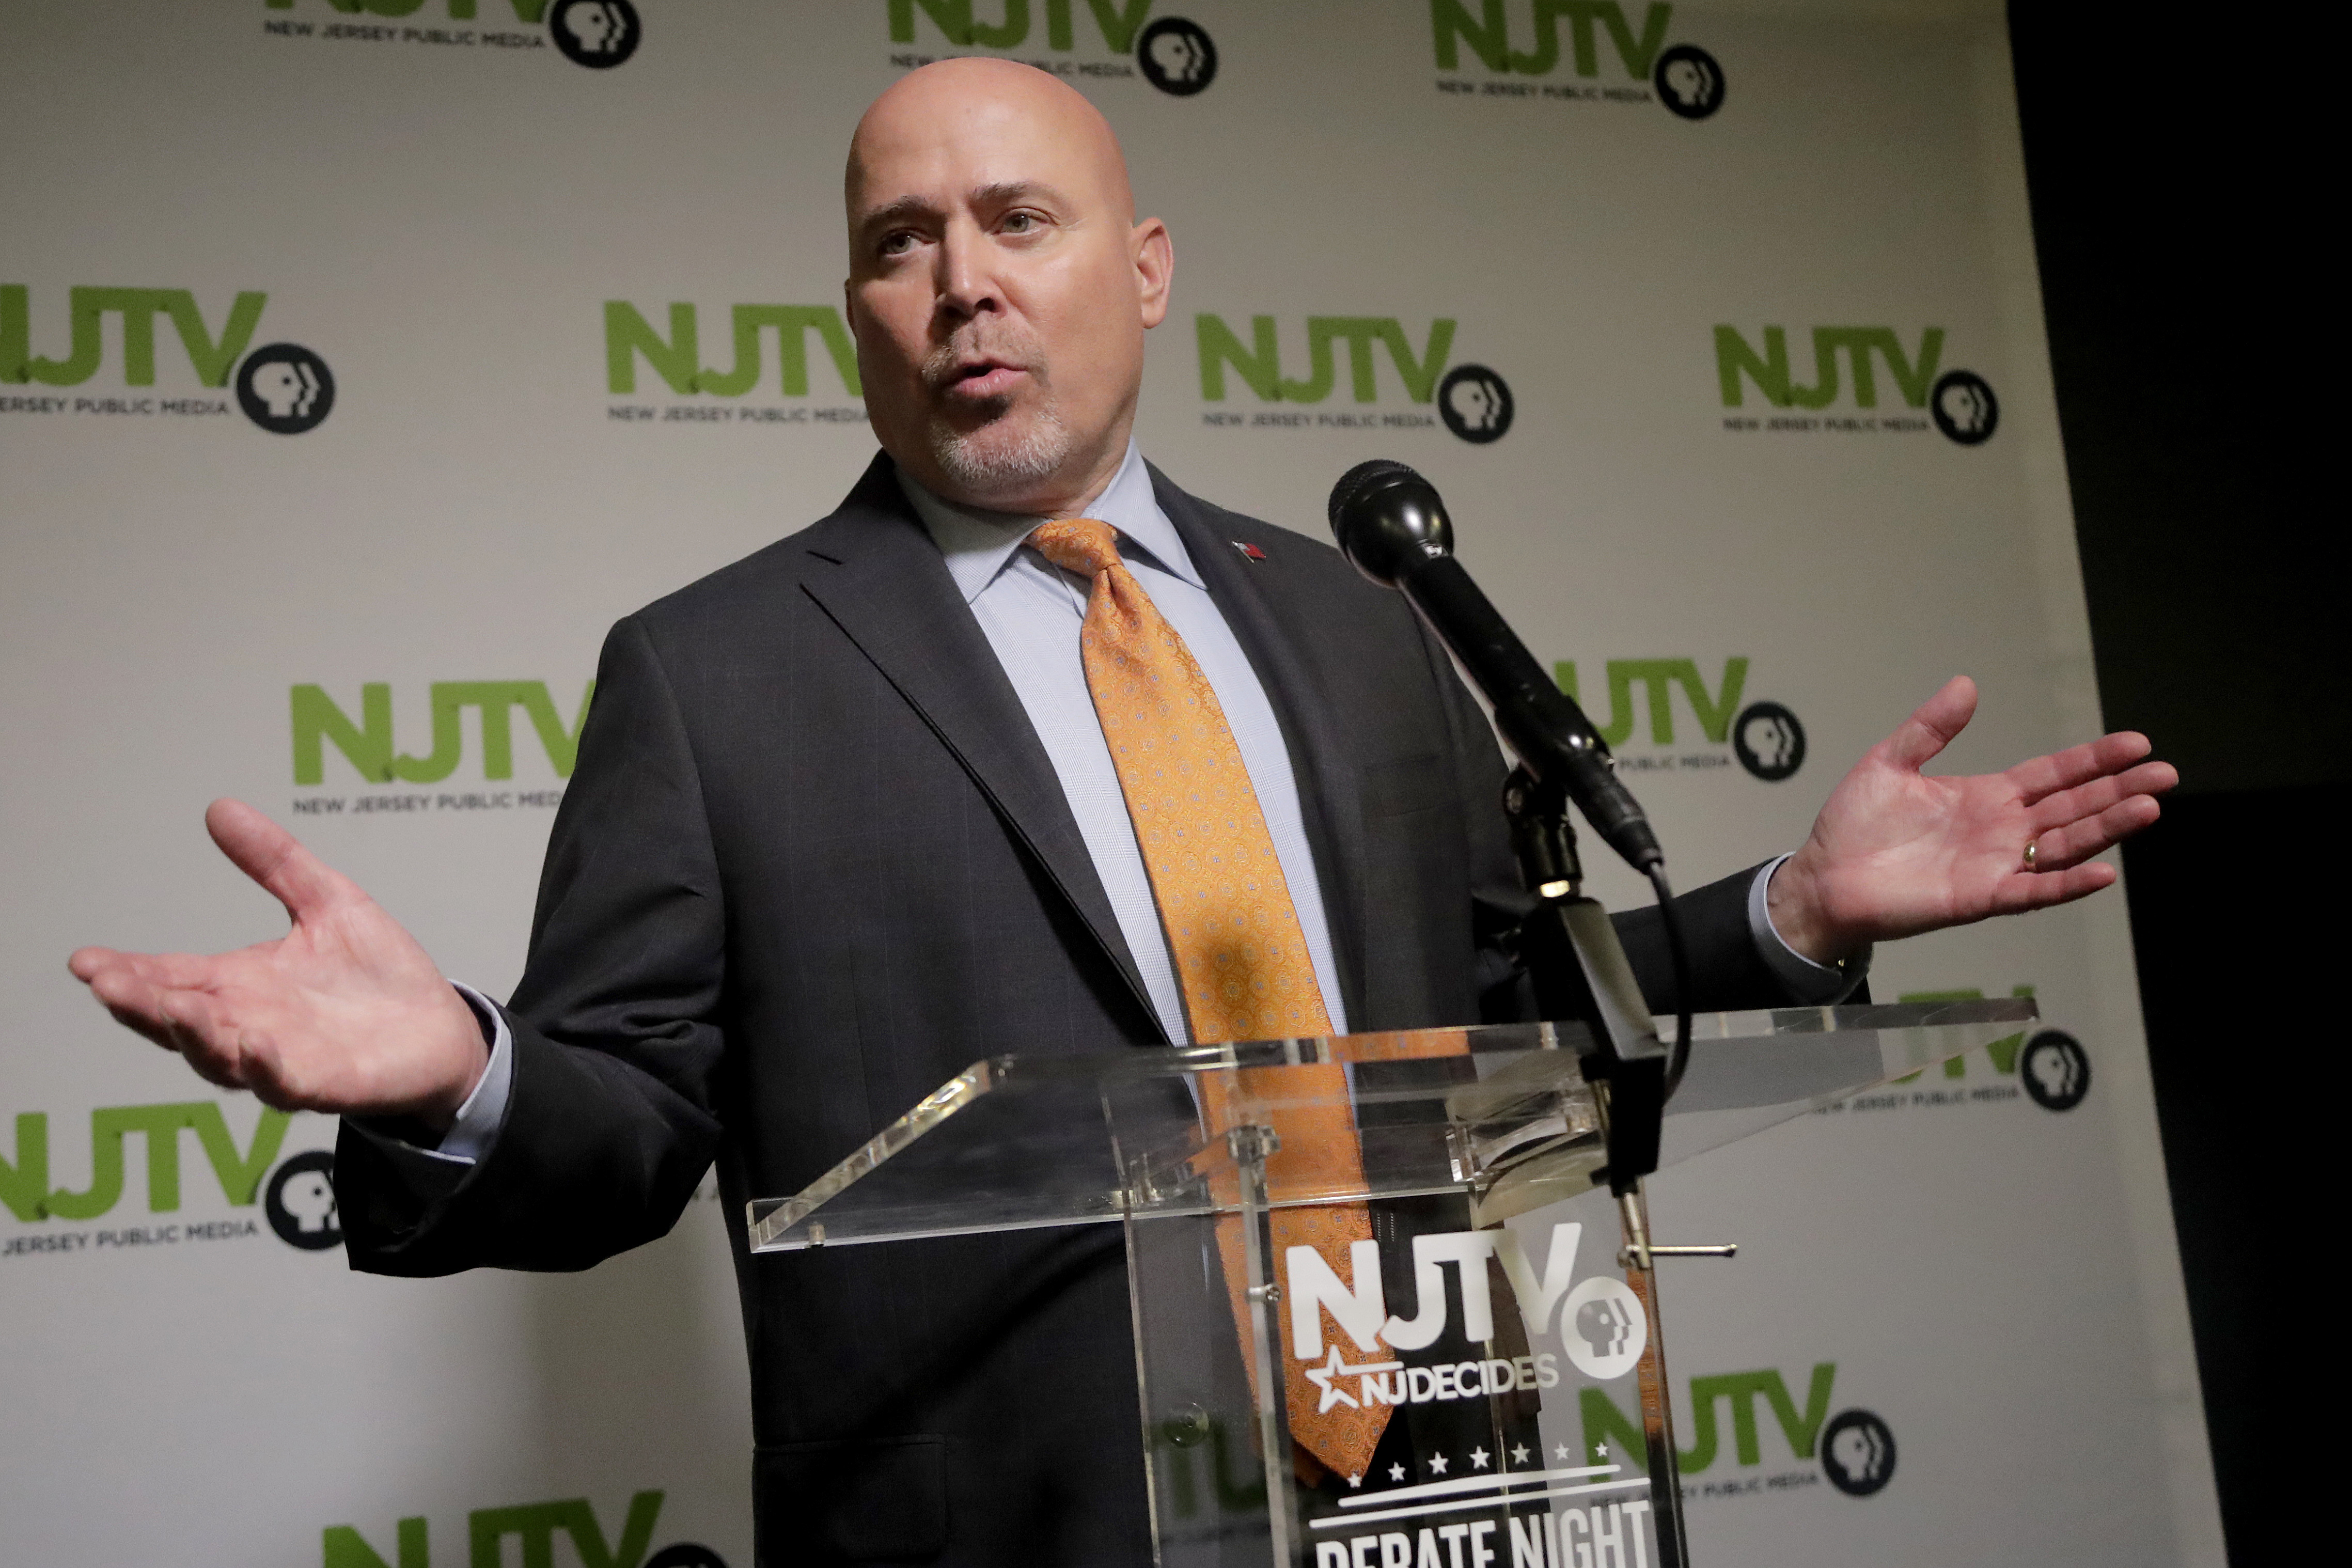 Tom MacArthur, the Republican candidate in the U.S. Congressional District 3 race, speaks to reporters after a debate with Democratic candidate Andy Kim, Wednesday, Oct. 31, 2018, in Newark, N.J. (